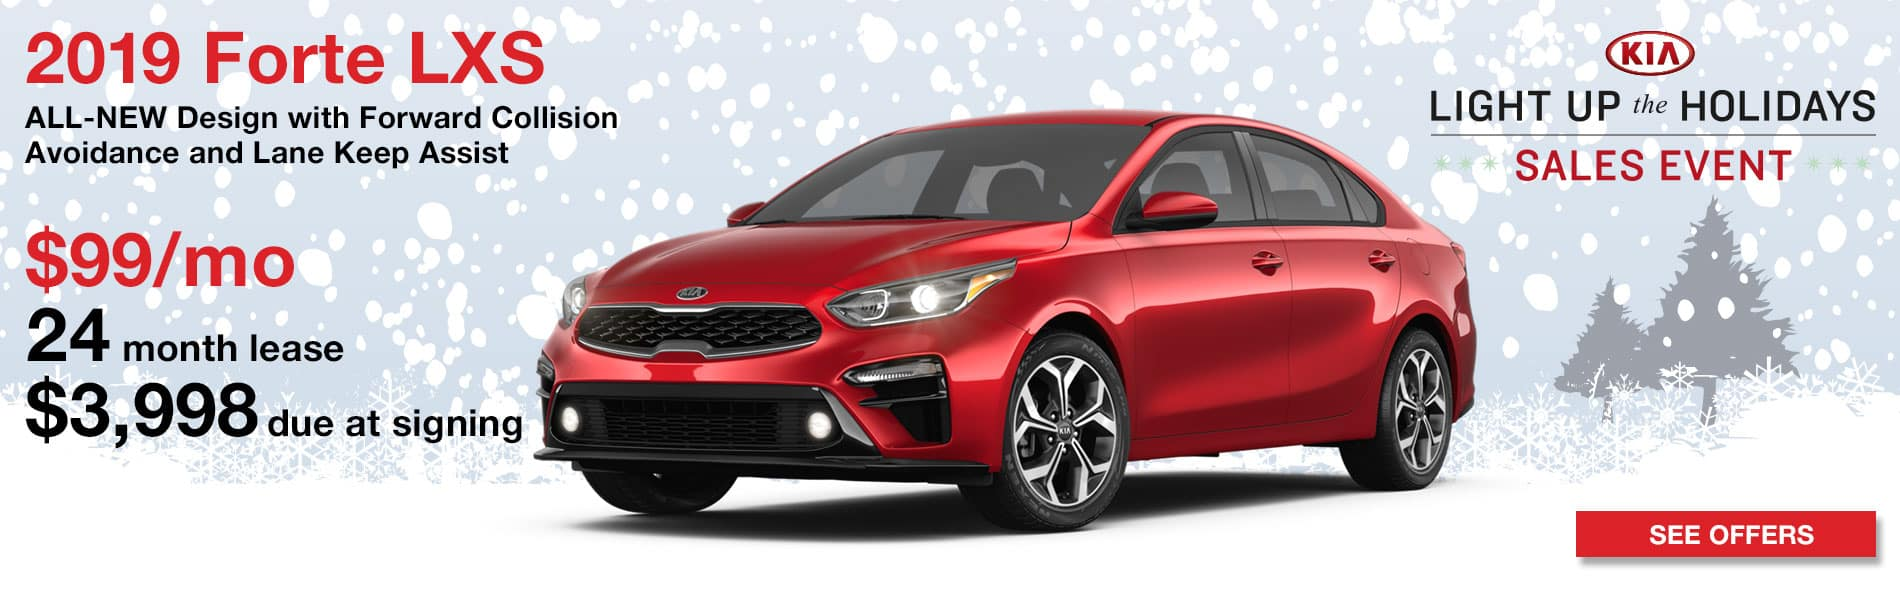 Lease a 2019 Forte LXS for $99 per month with $3,998 due at signing